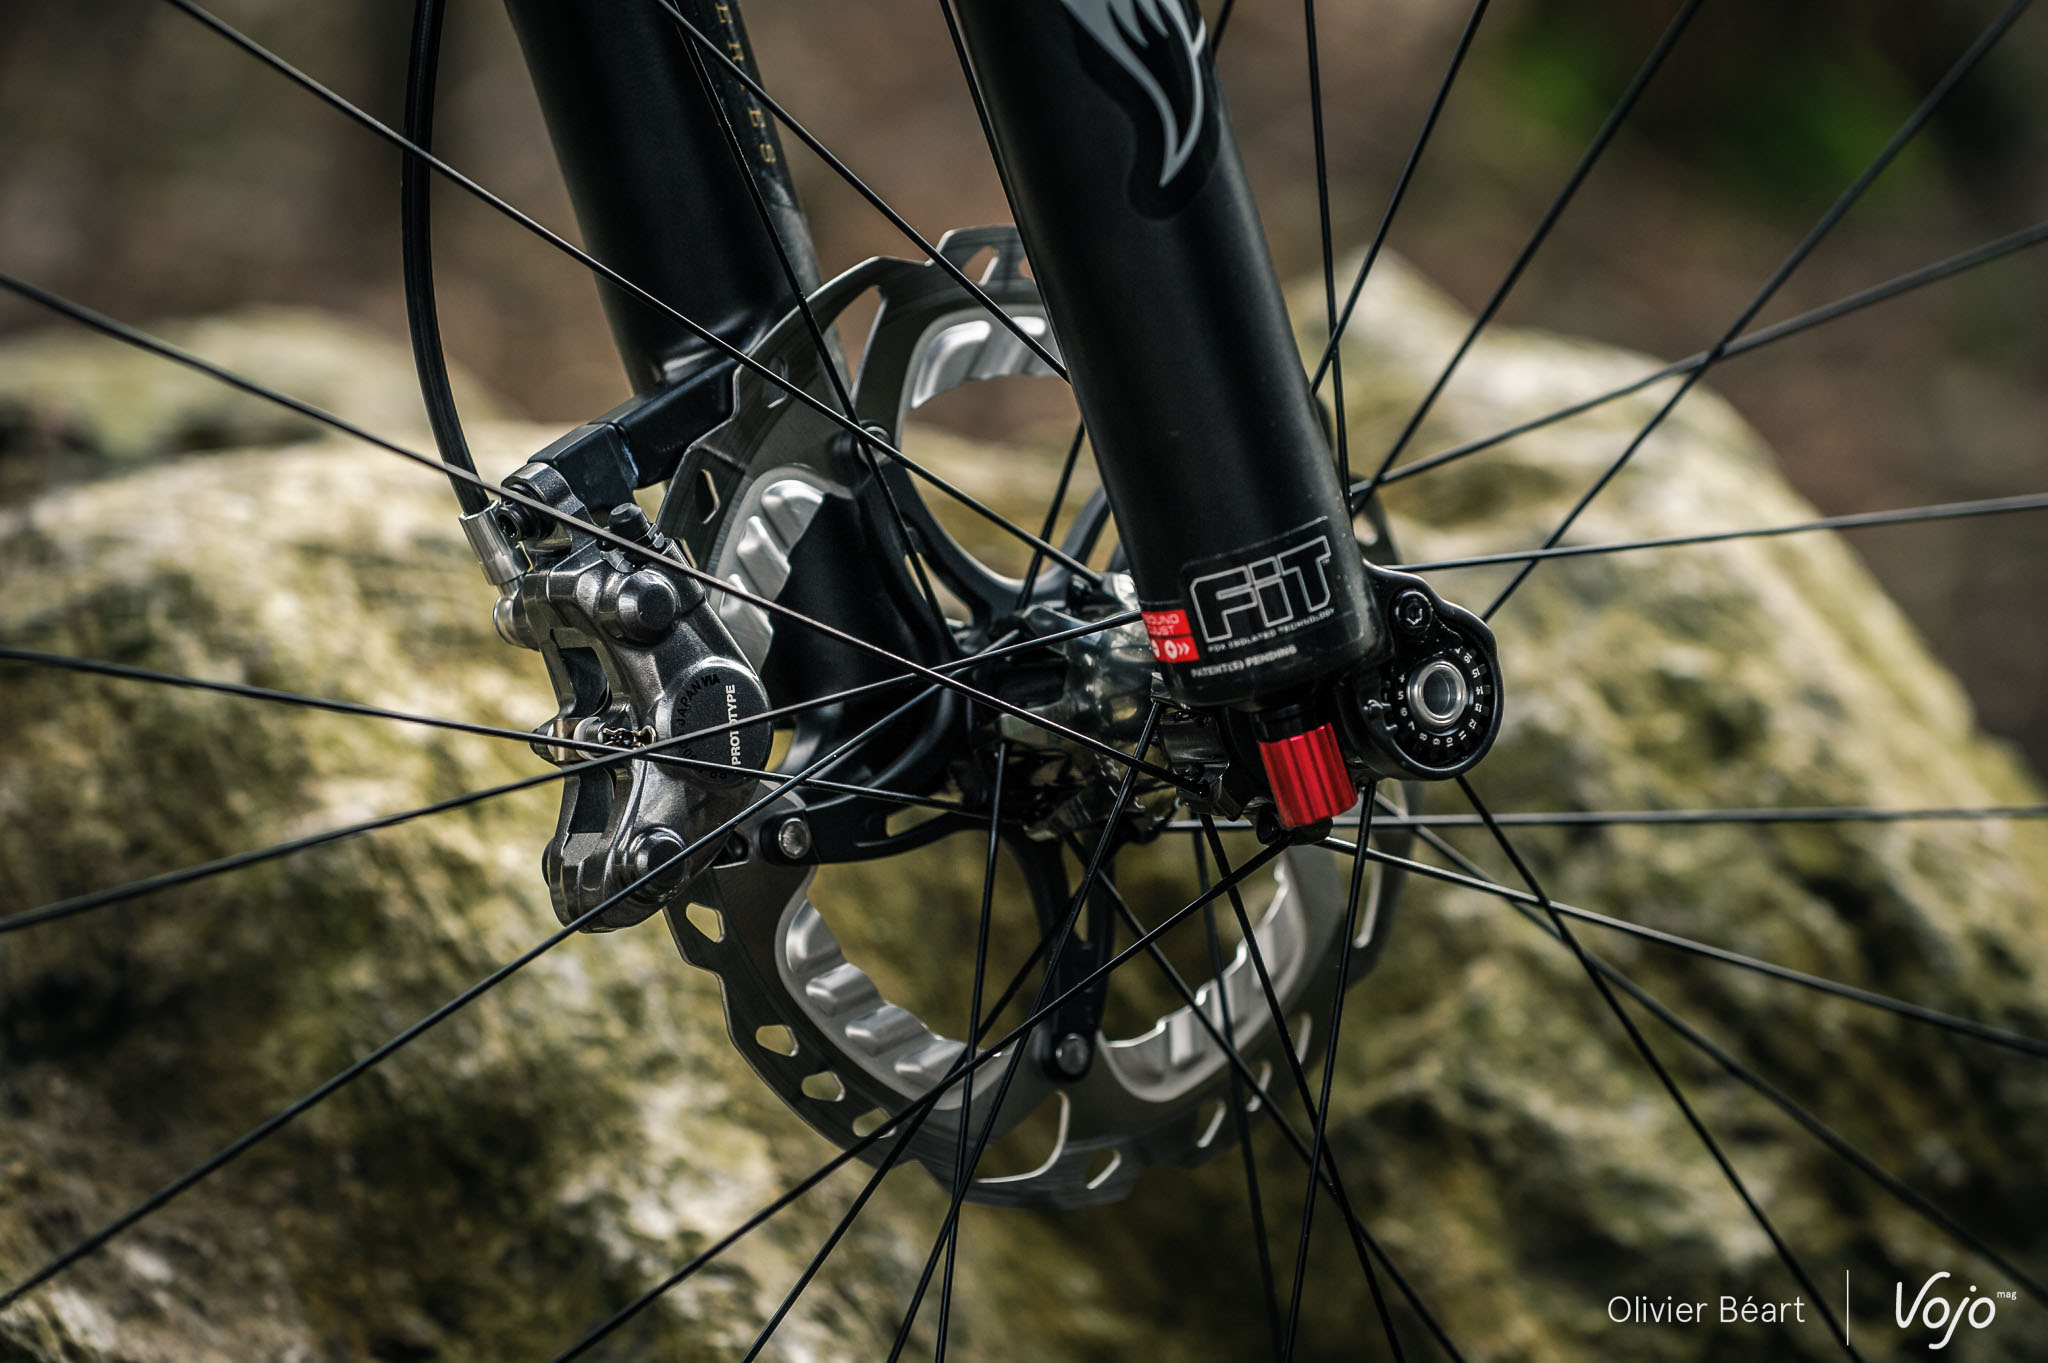 shimano_xtr_freins_test_copyright_obeart_vojomag-8